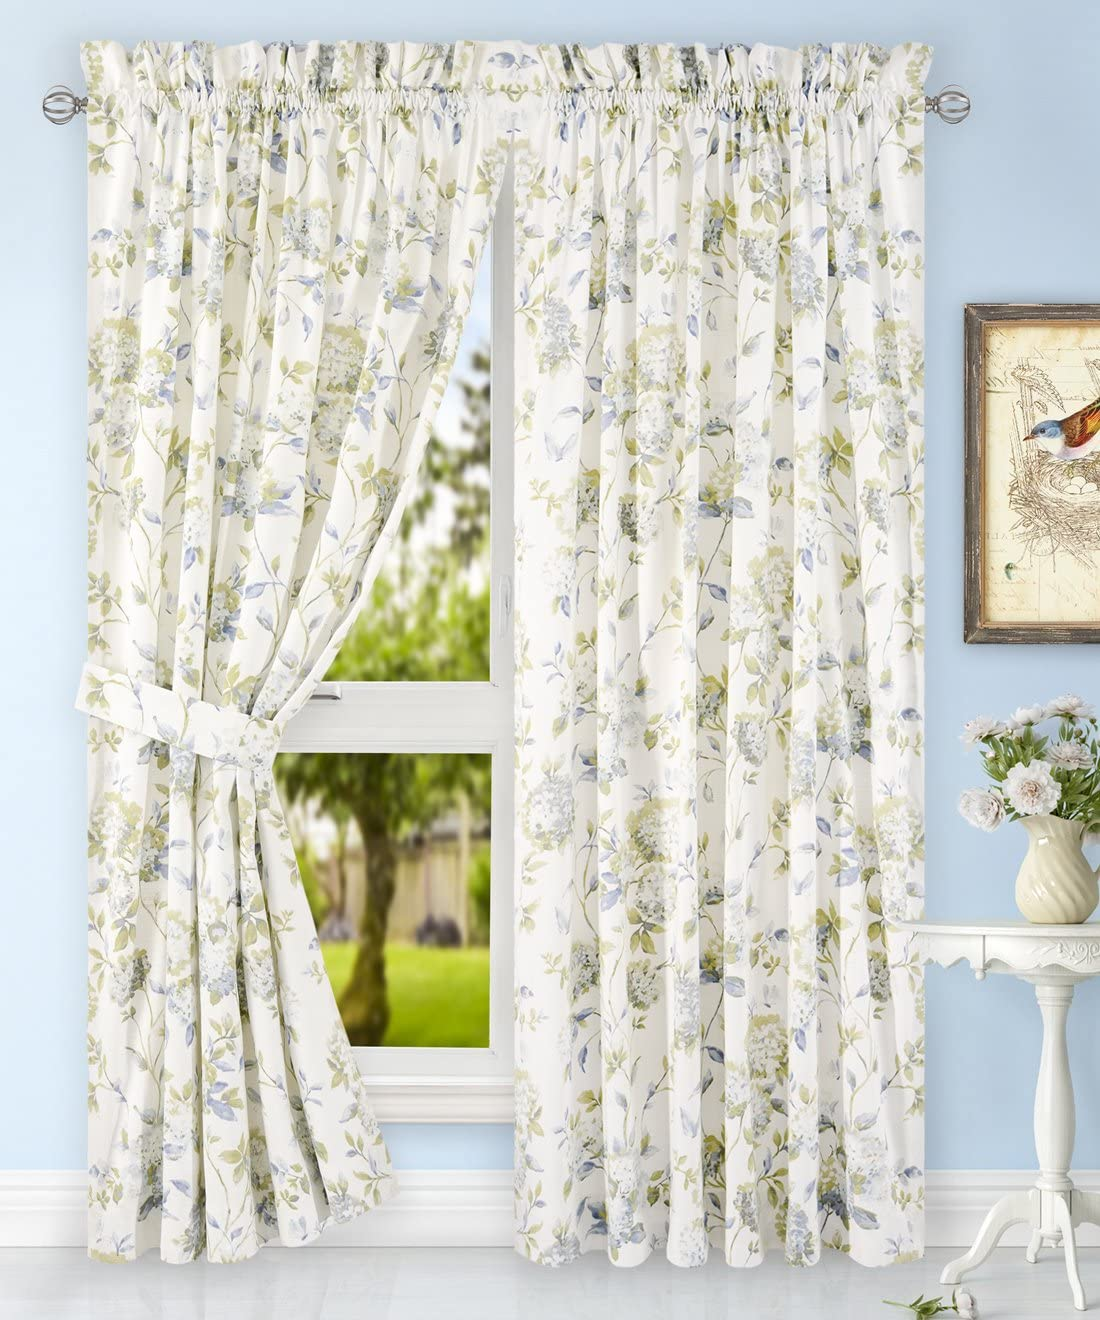 Simple Comfort Abigail Traditional Hydrangea Floral Print Tailored Panel Pair with Tiebacks, 90 x 84, Porcelain